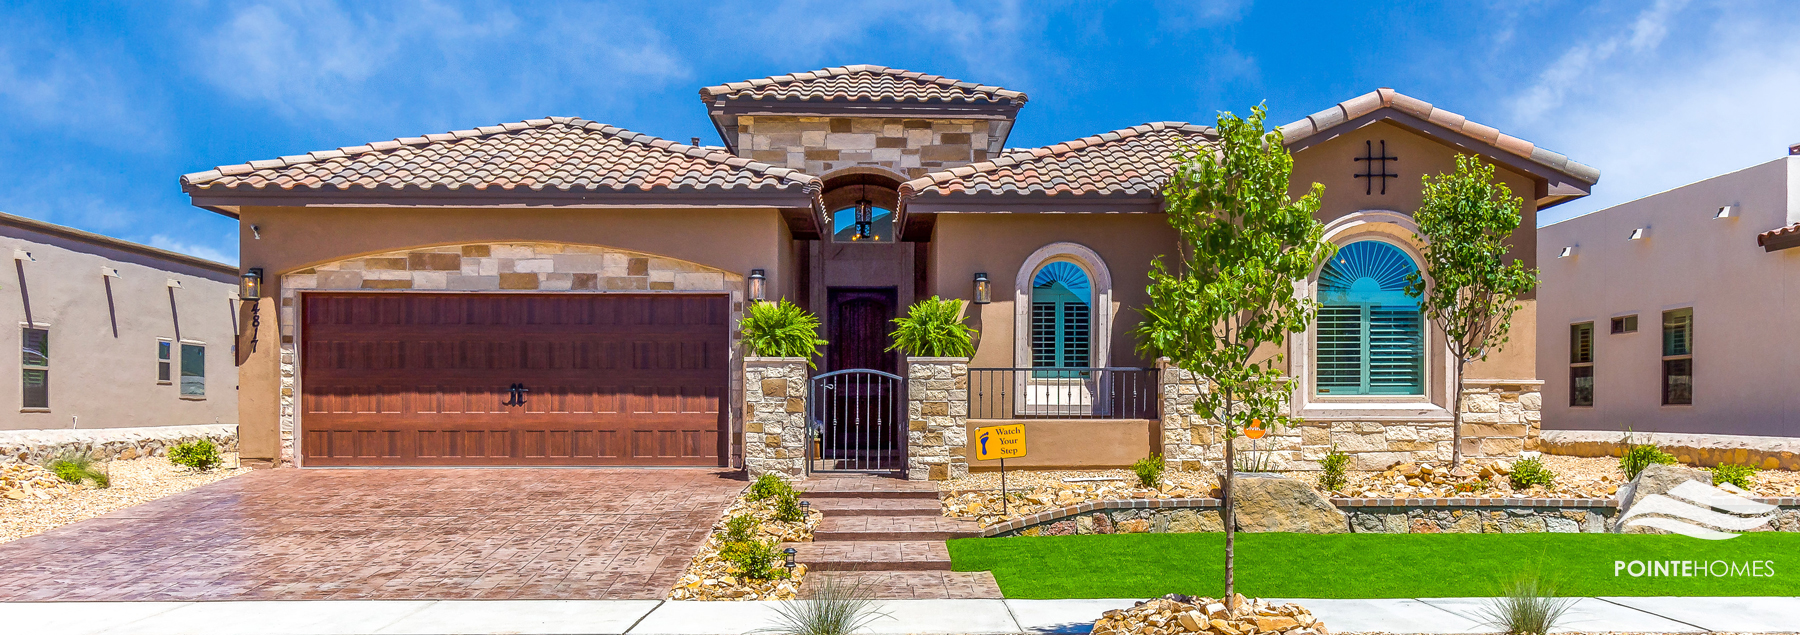 Featured homes el paso festival of homes for New homes in el paso tx